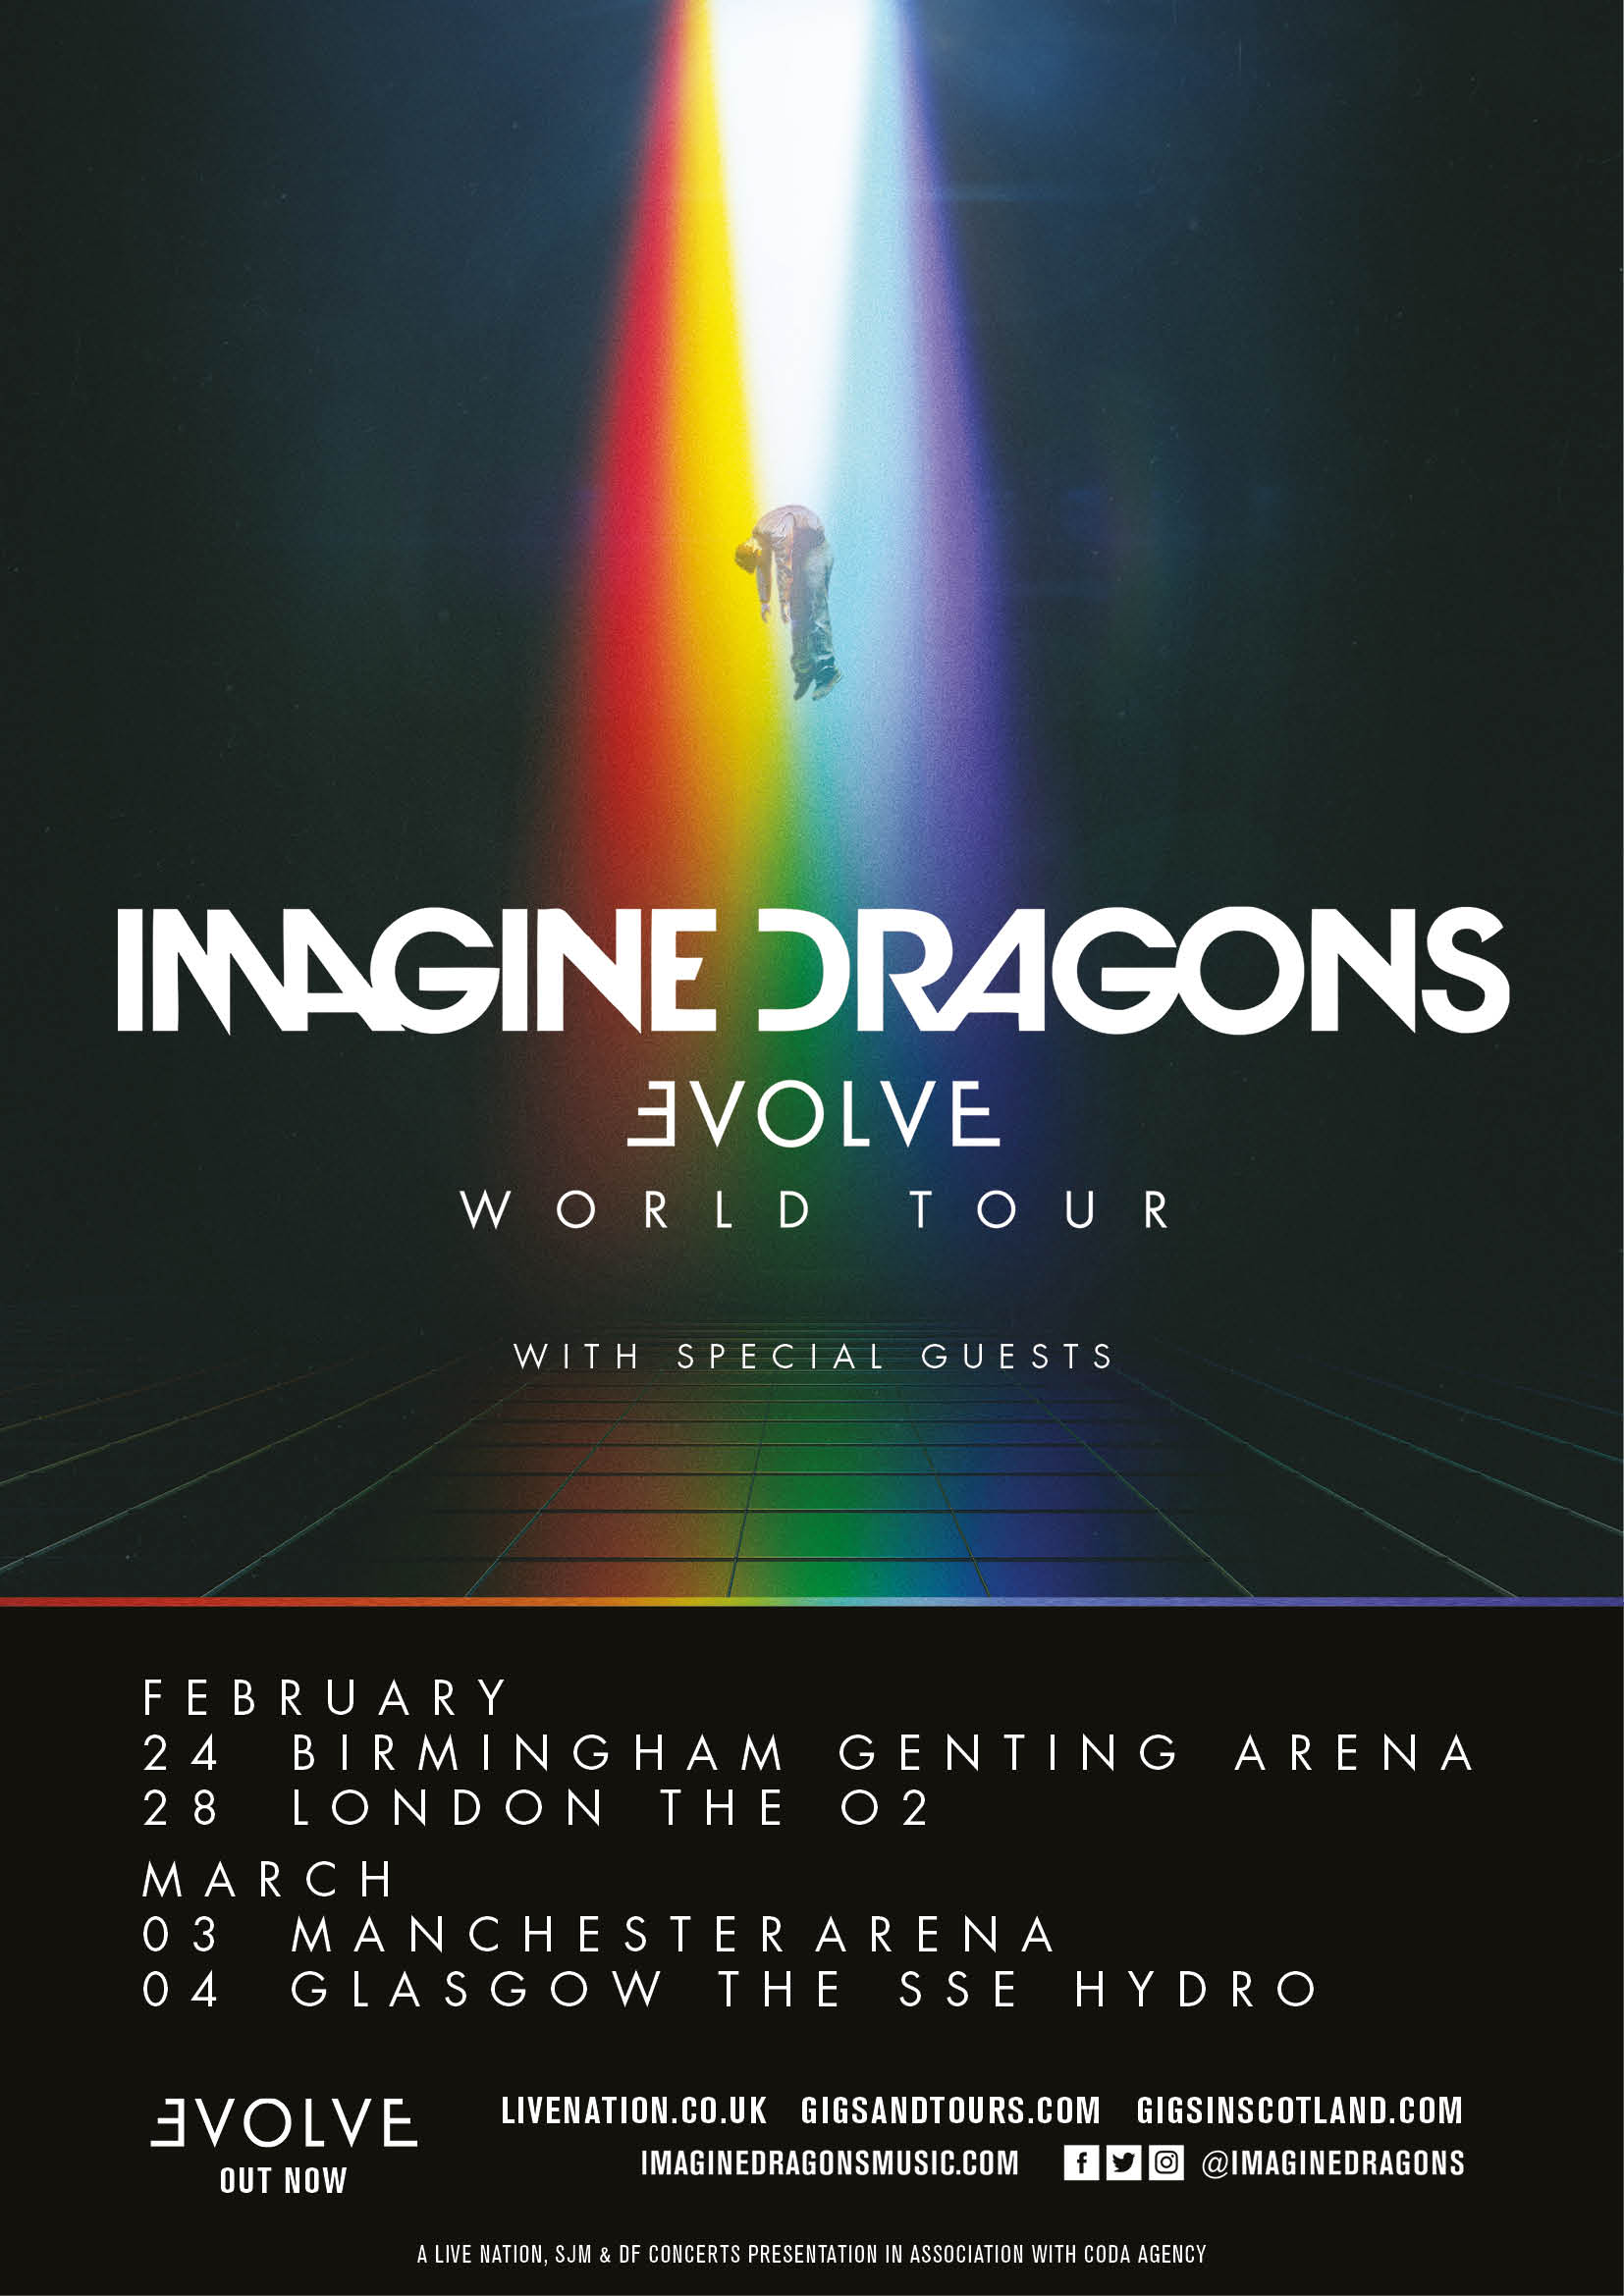 Imagine Dragons Evolve World Tour UK Dates